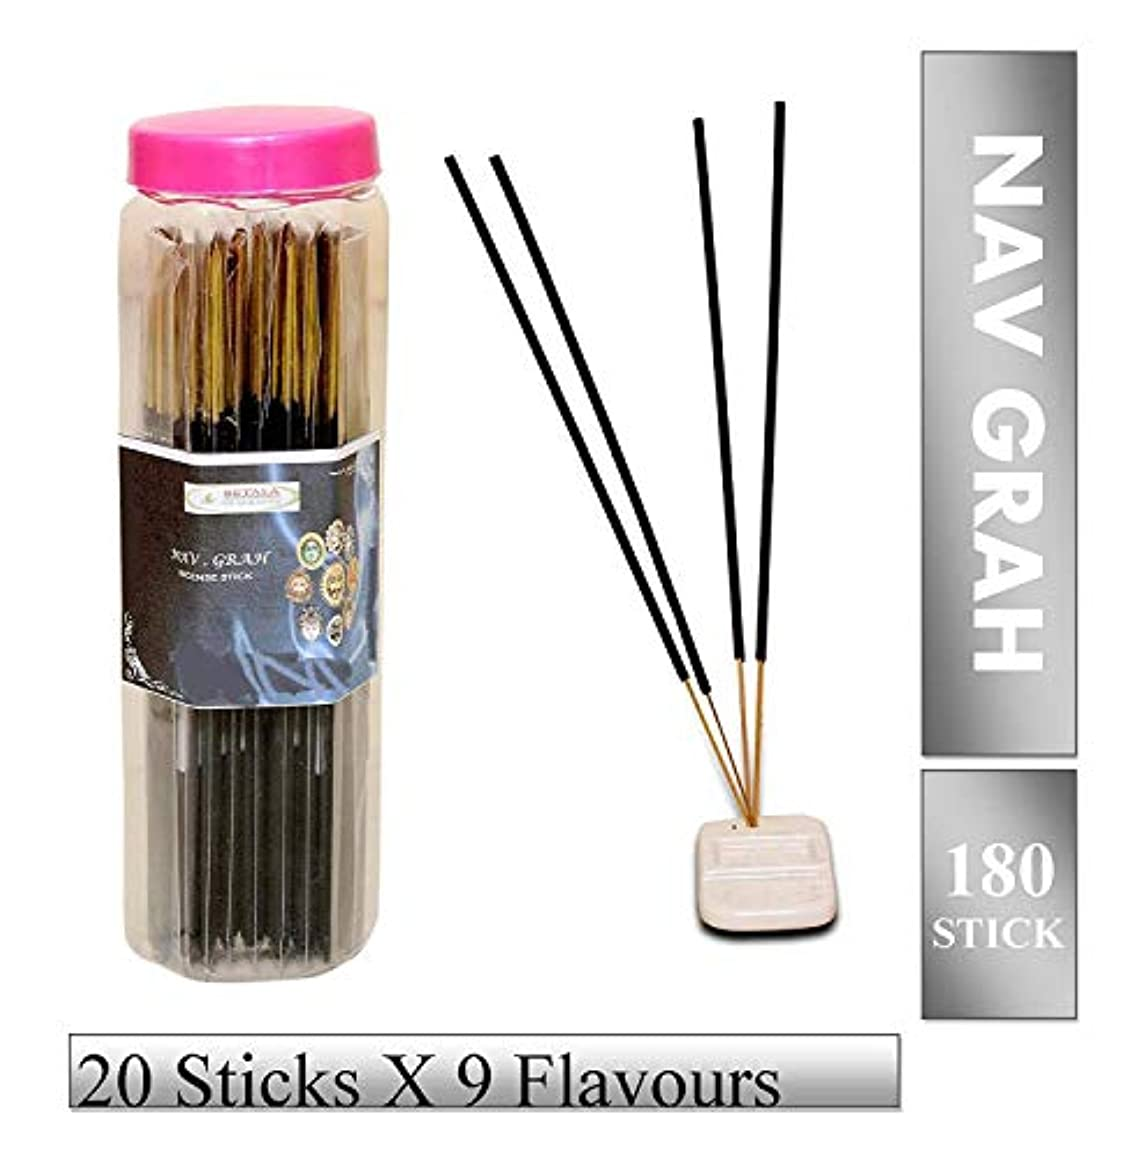 オセアニア慣習妻BETALA MARKETING Combo Of Navgrah 9 In 1 Agarbatti Sticks With Agarbatti Box - Pack 0f 9 Flavours (180 Sticks)